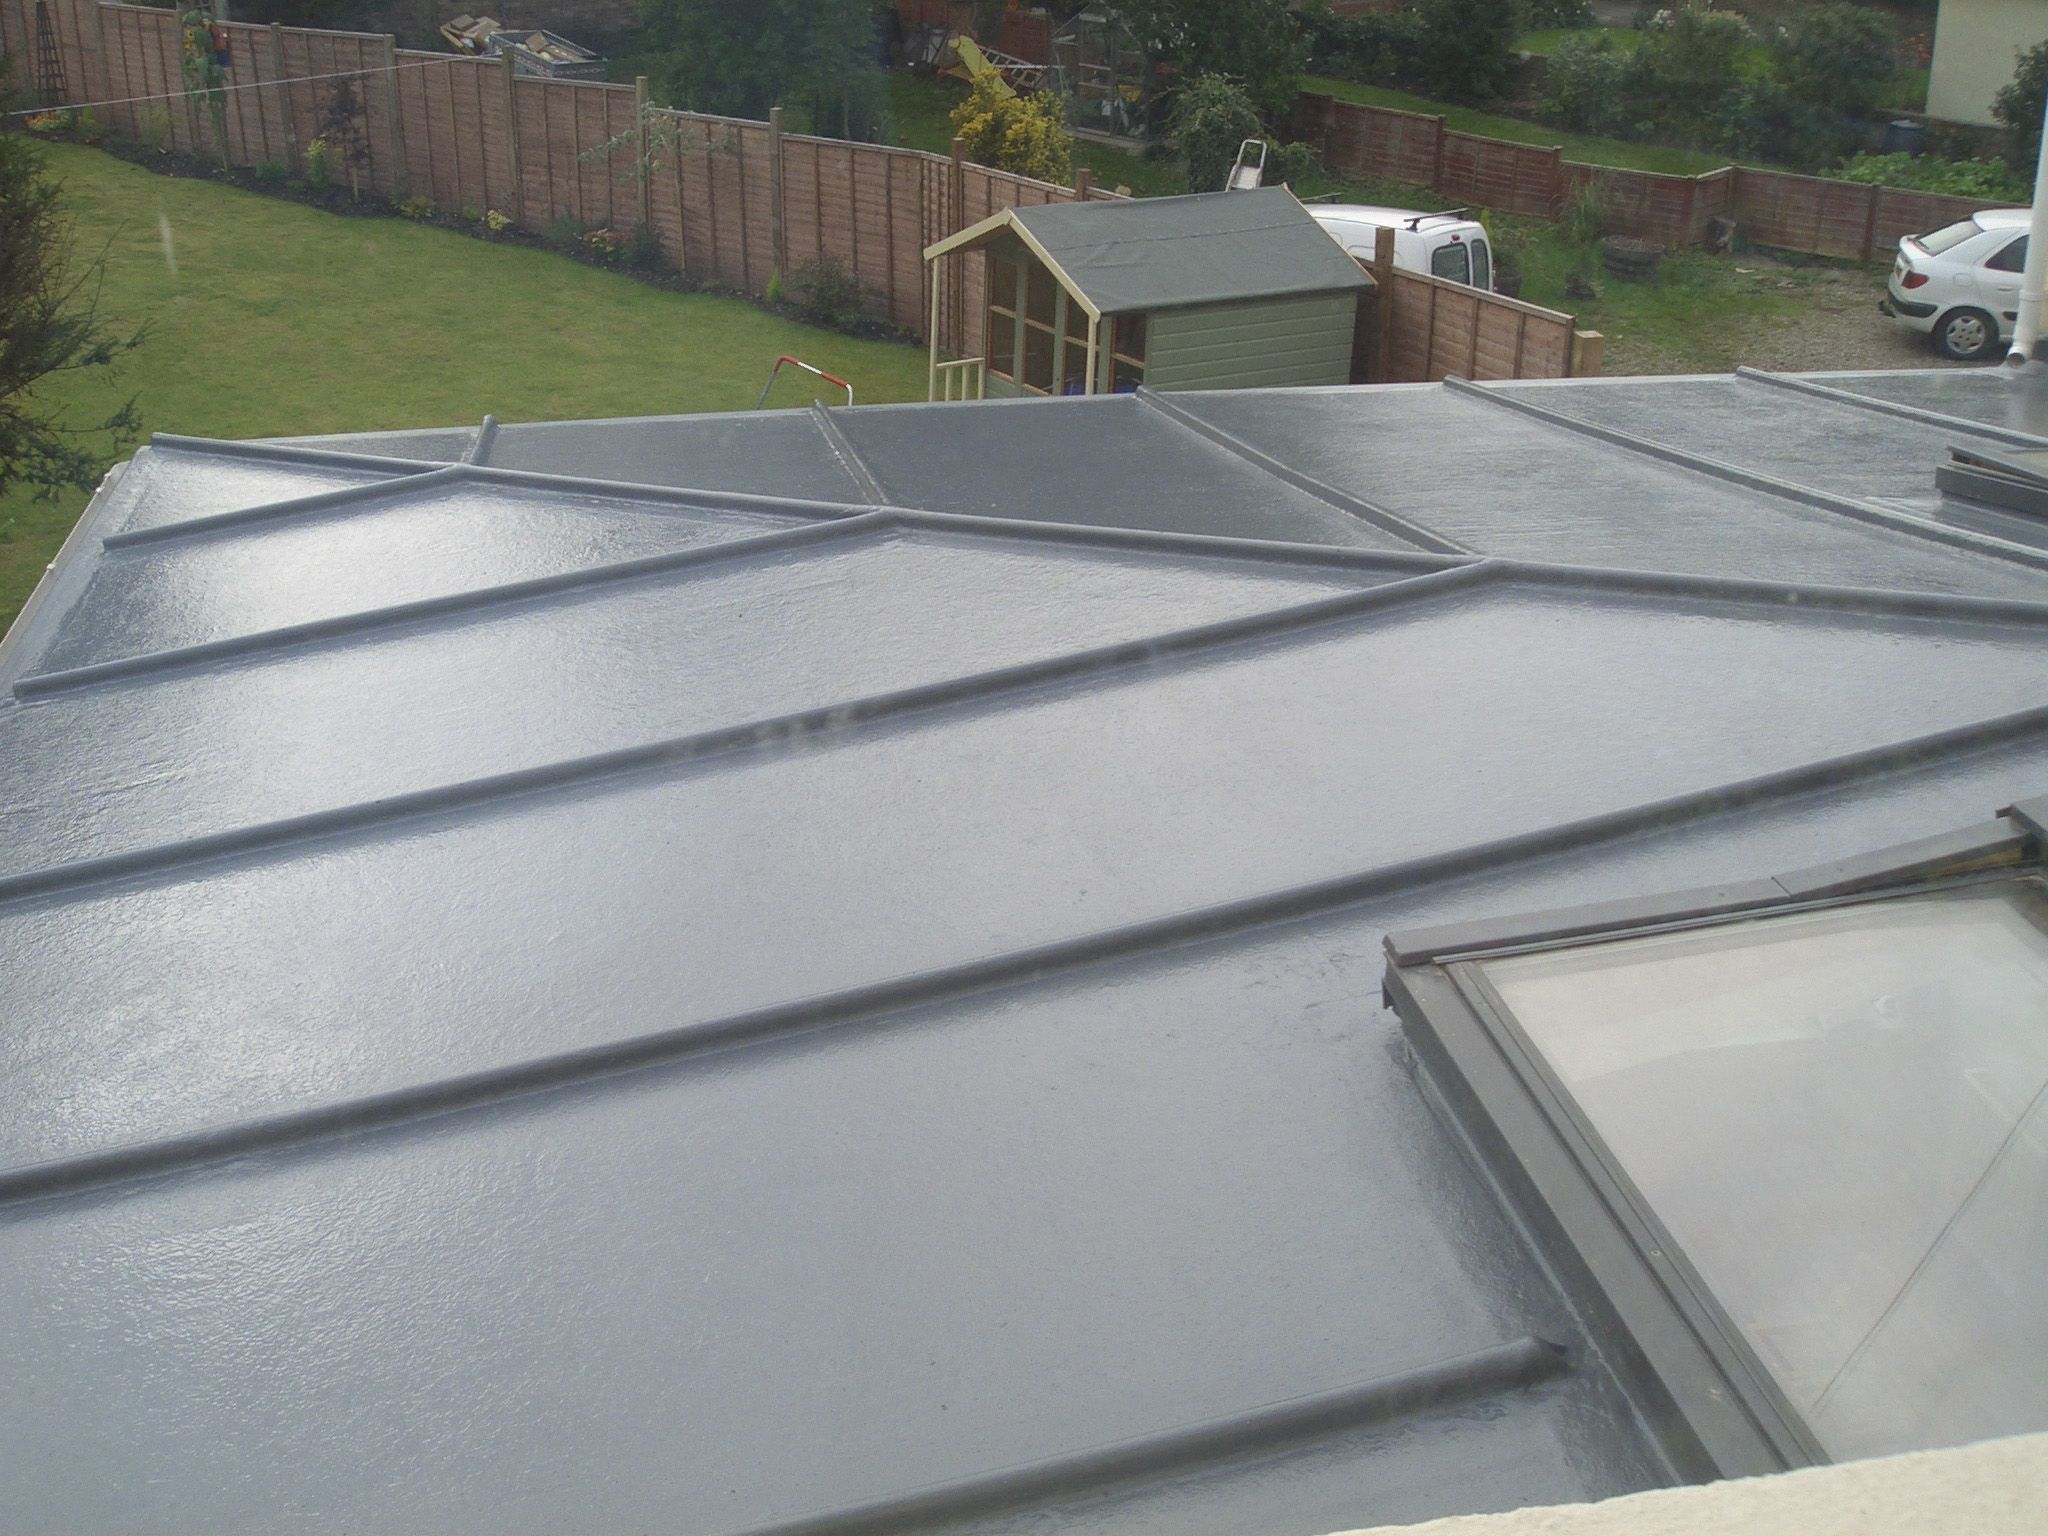 3 Fabulous Cool Ideas Roofing Types Style Roofing Terrace Pool Roofing Structure Beautiful Roofing Structure Beautiful R Fibreglass Roof Grp Roofing Flat Roof